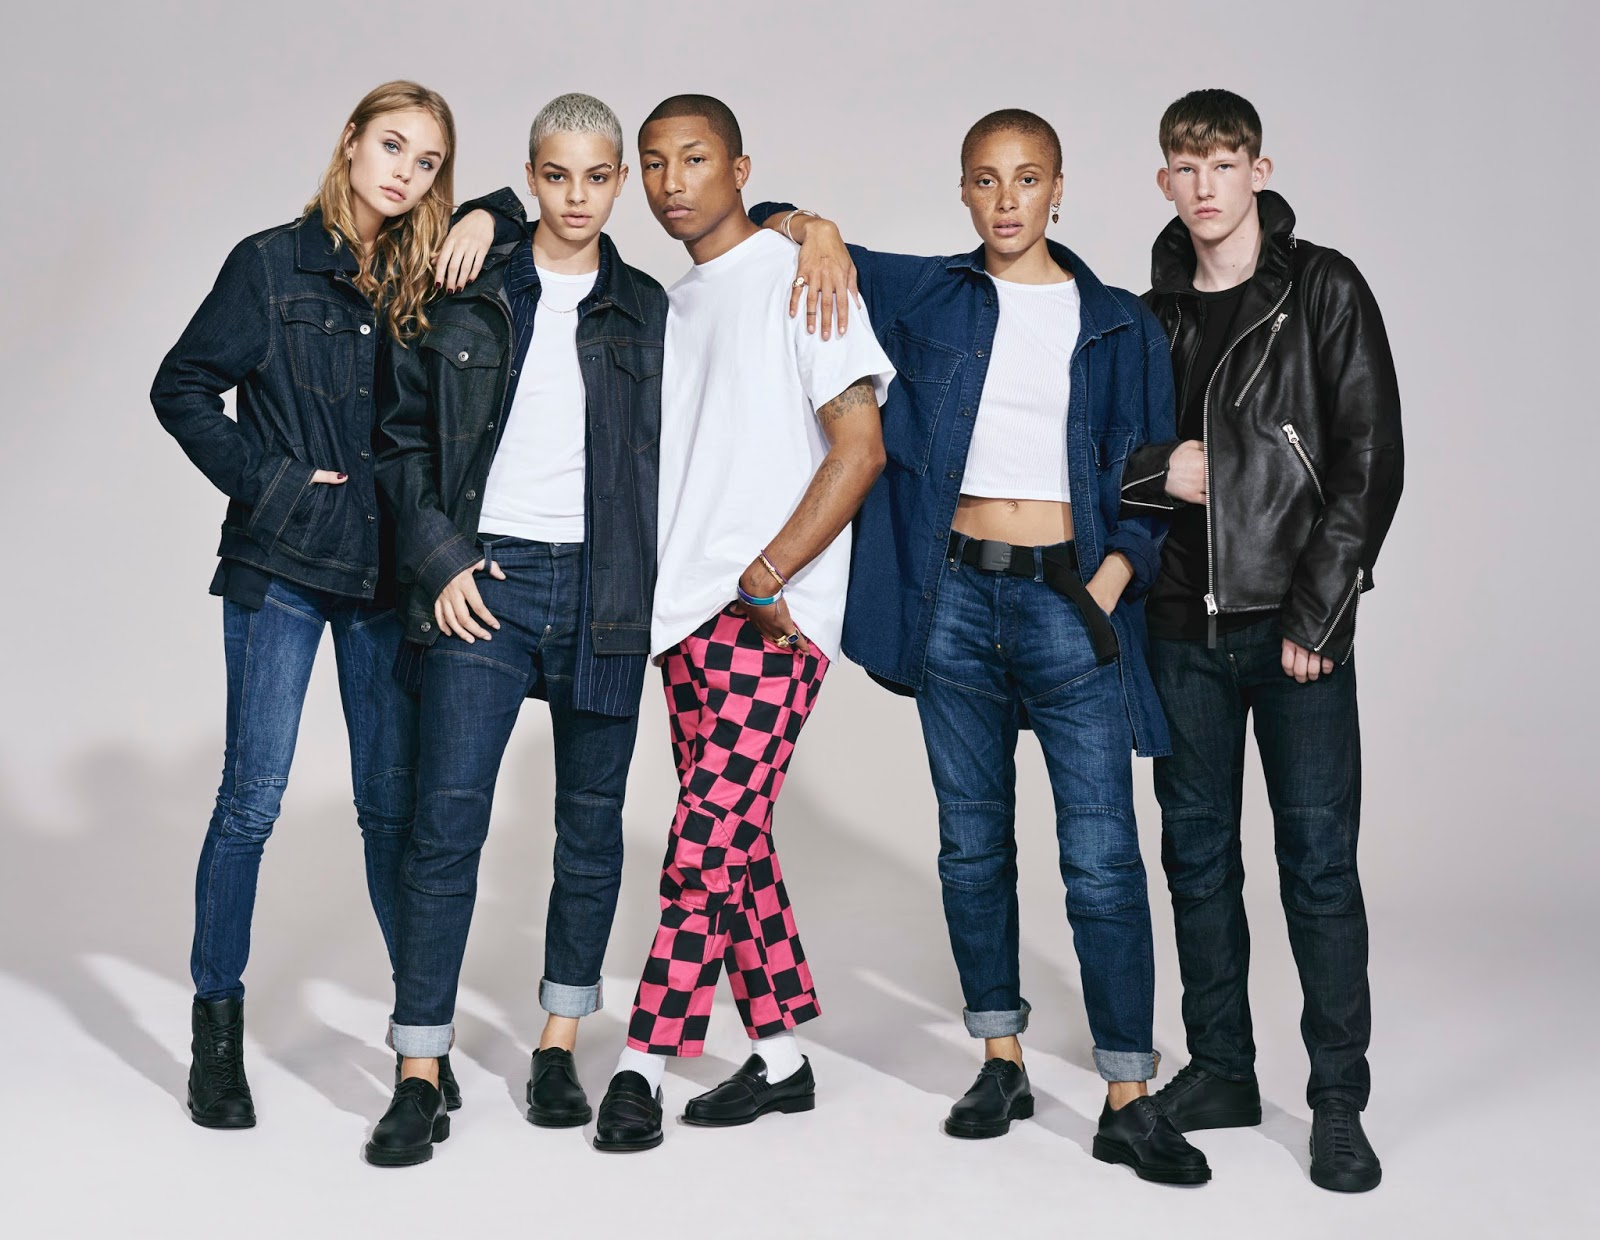 swag craze first look g star raw fall winter 2017 campaign. Black Bedroom Furniture Sets. Home Design Ideas